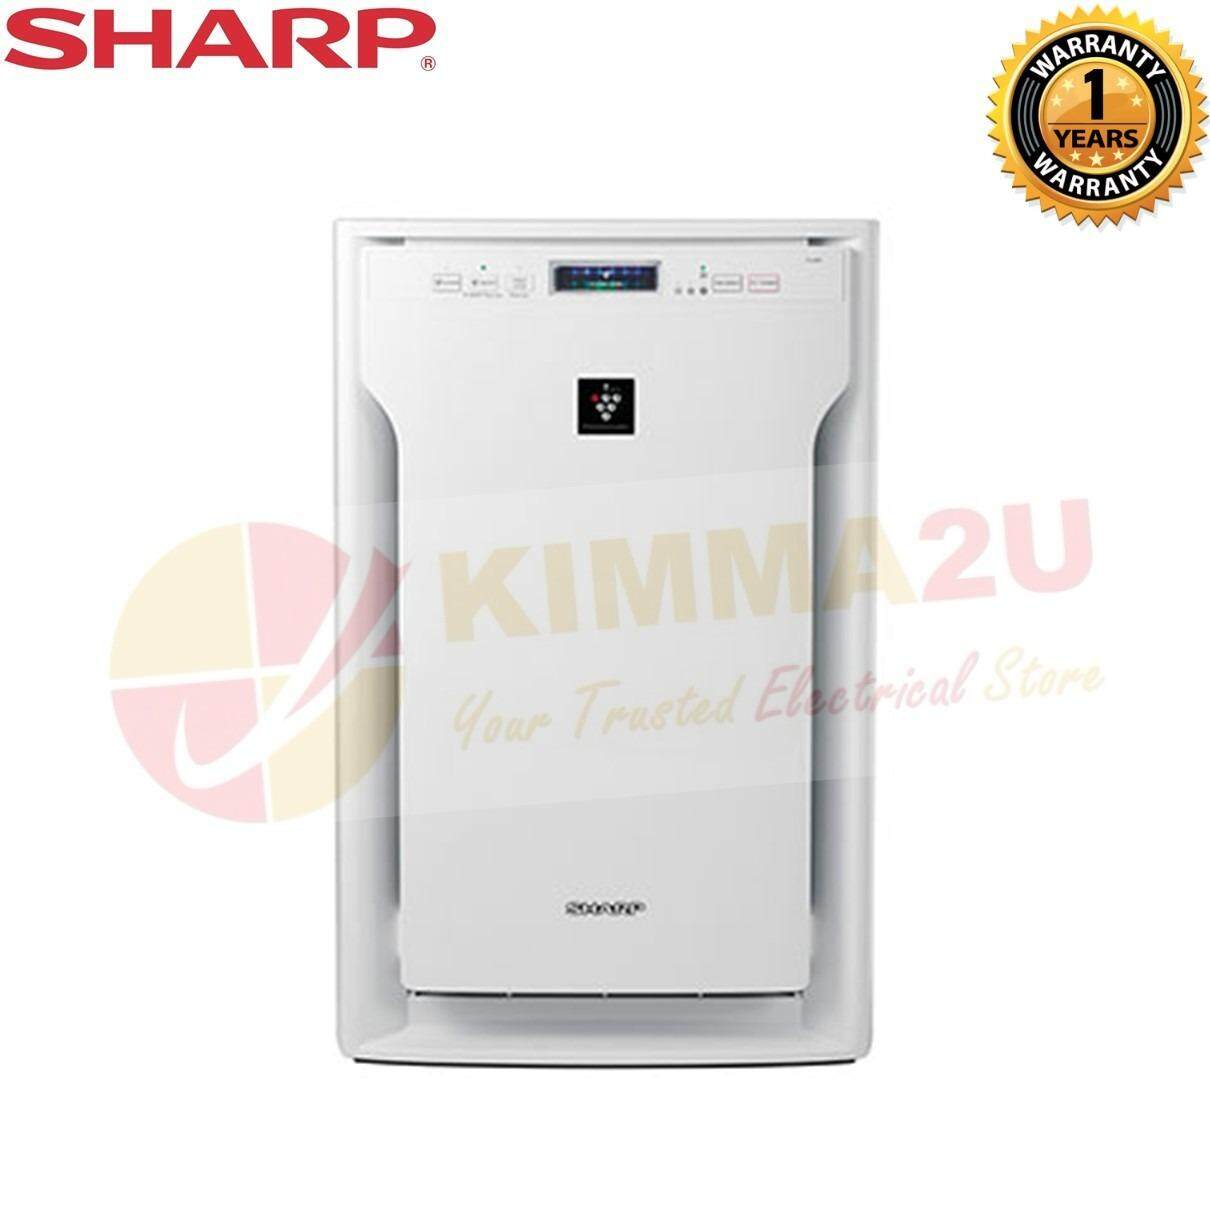 (AUTHORISED DEALER) SHARP JAPAN FUA80EW PLASMACLUSTER AIR PURIFIER (WHITE)